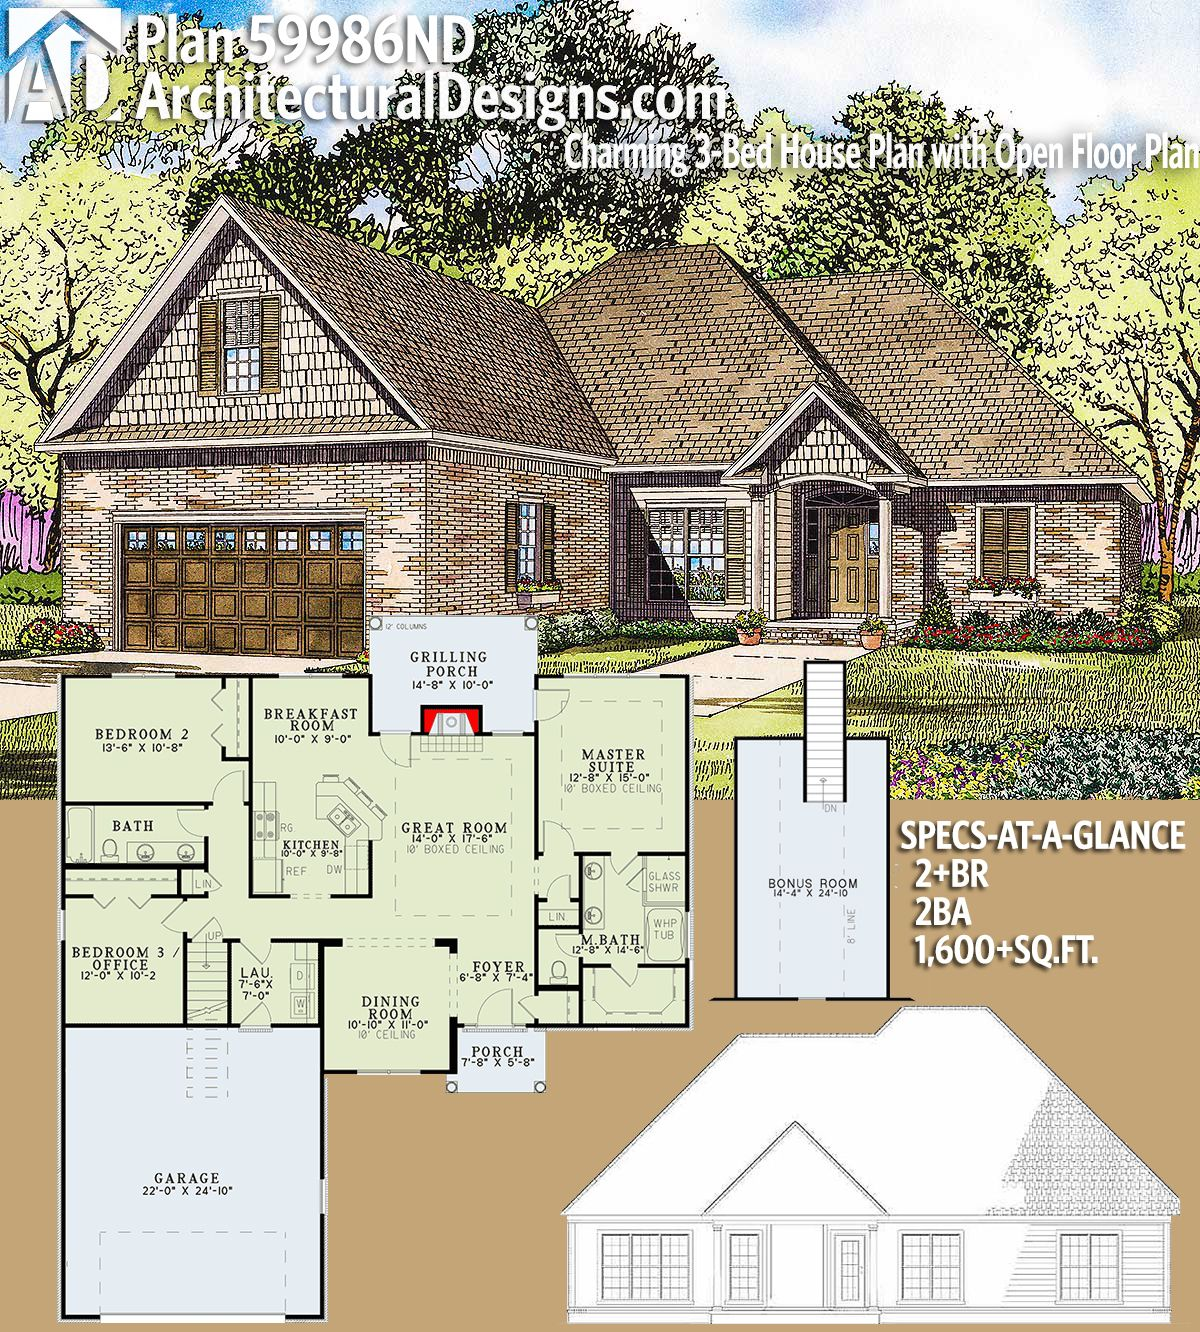 Plan 59986nd Charming 3 Bed House Plan With Open Floor Plan House Plans Dream House Plans Architectural Design House Plans